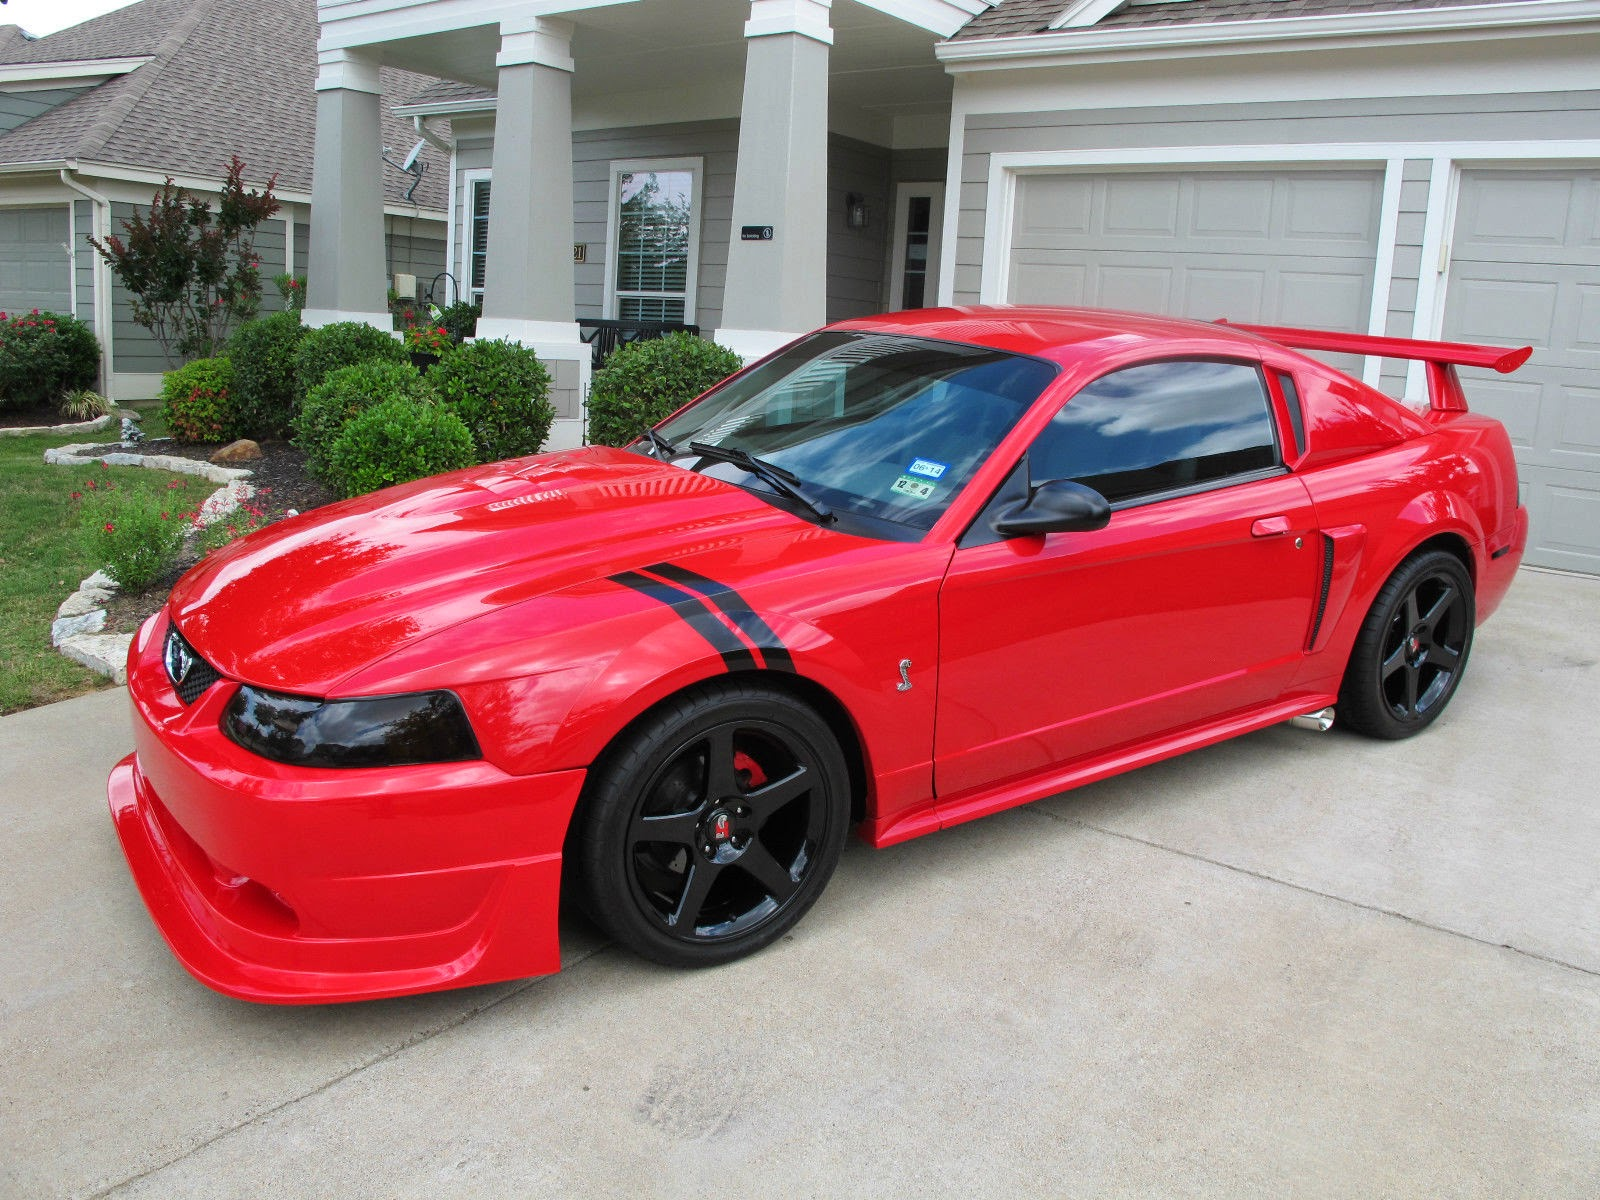 2004 ford mustang gt custom super charger for sale american muscle